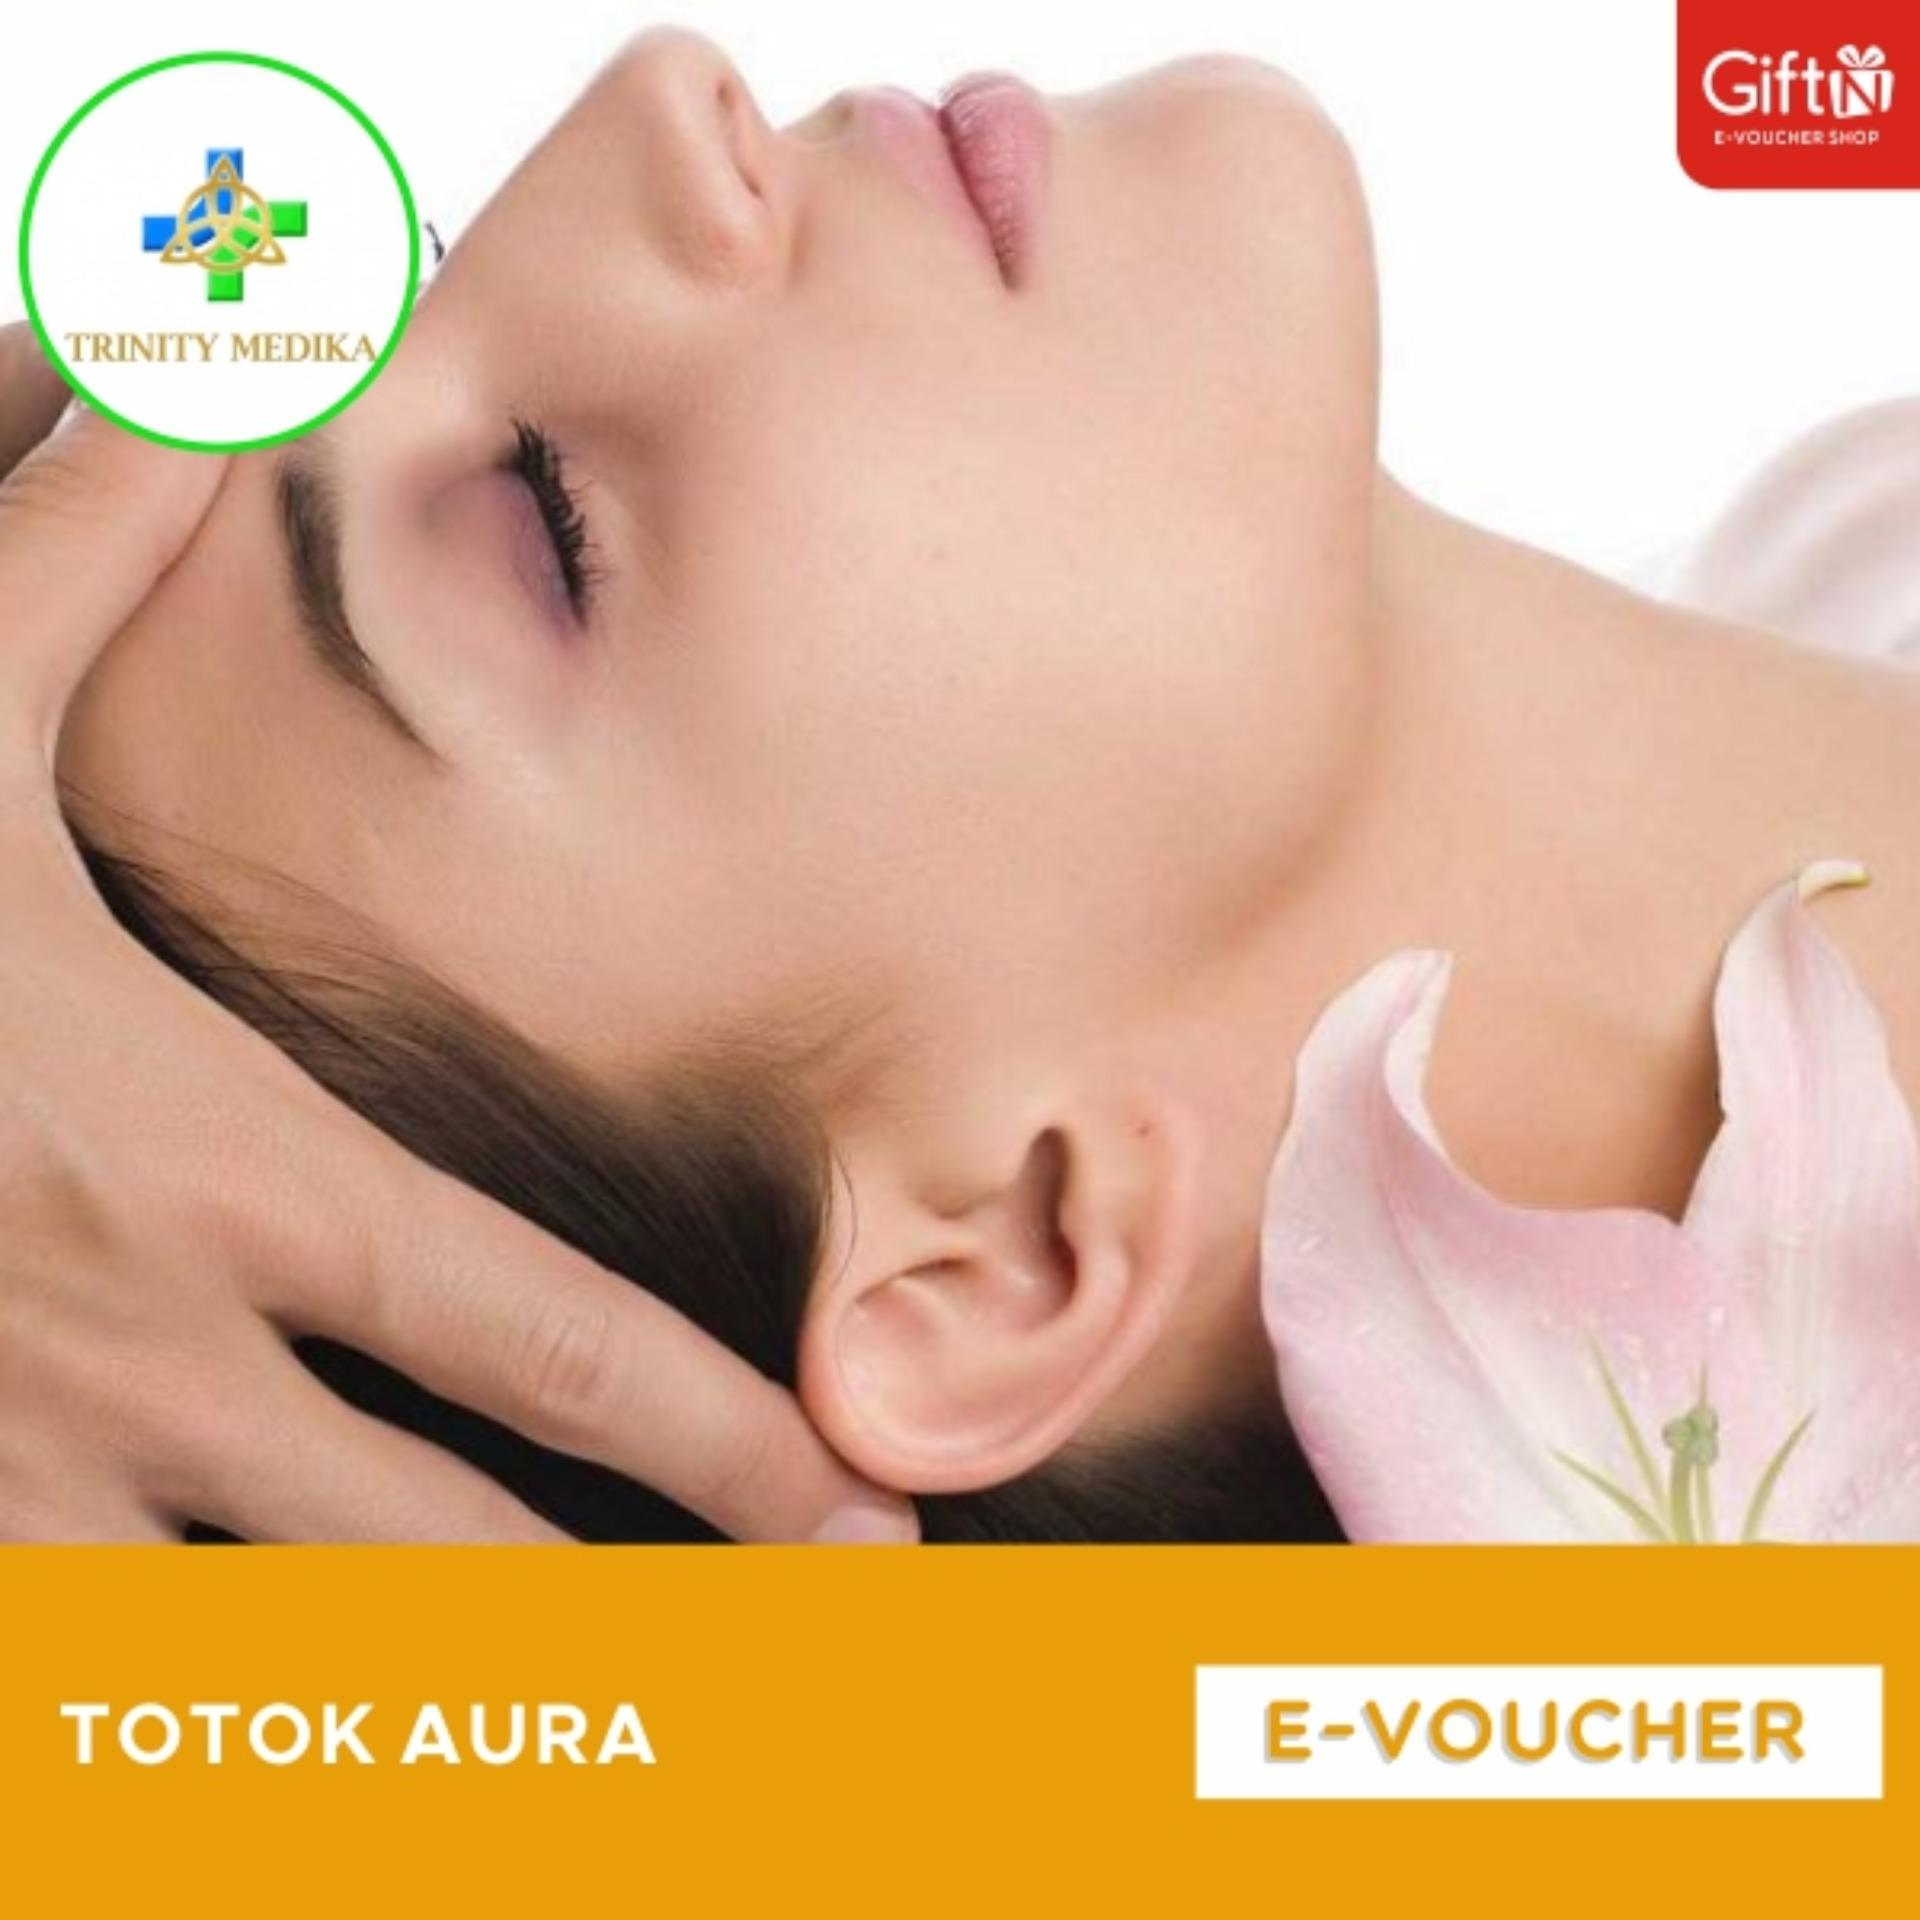 Pure Laser Clinic From Singapore By Ppp 5x Pure Photo Laser Treatment Tunjungan Plaza By Fave Indonesia